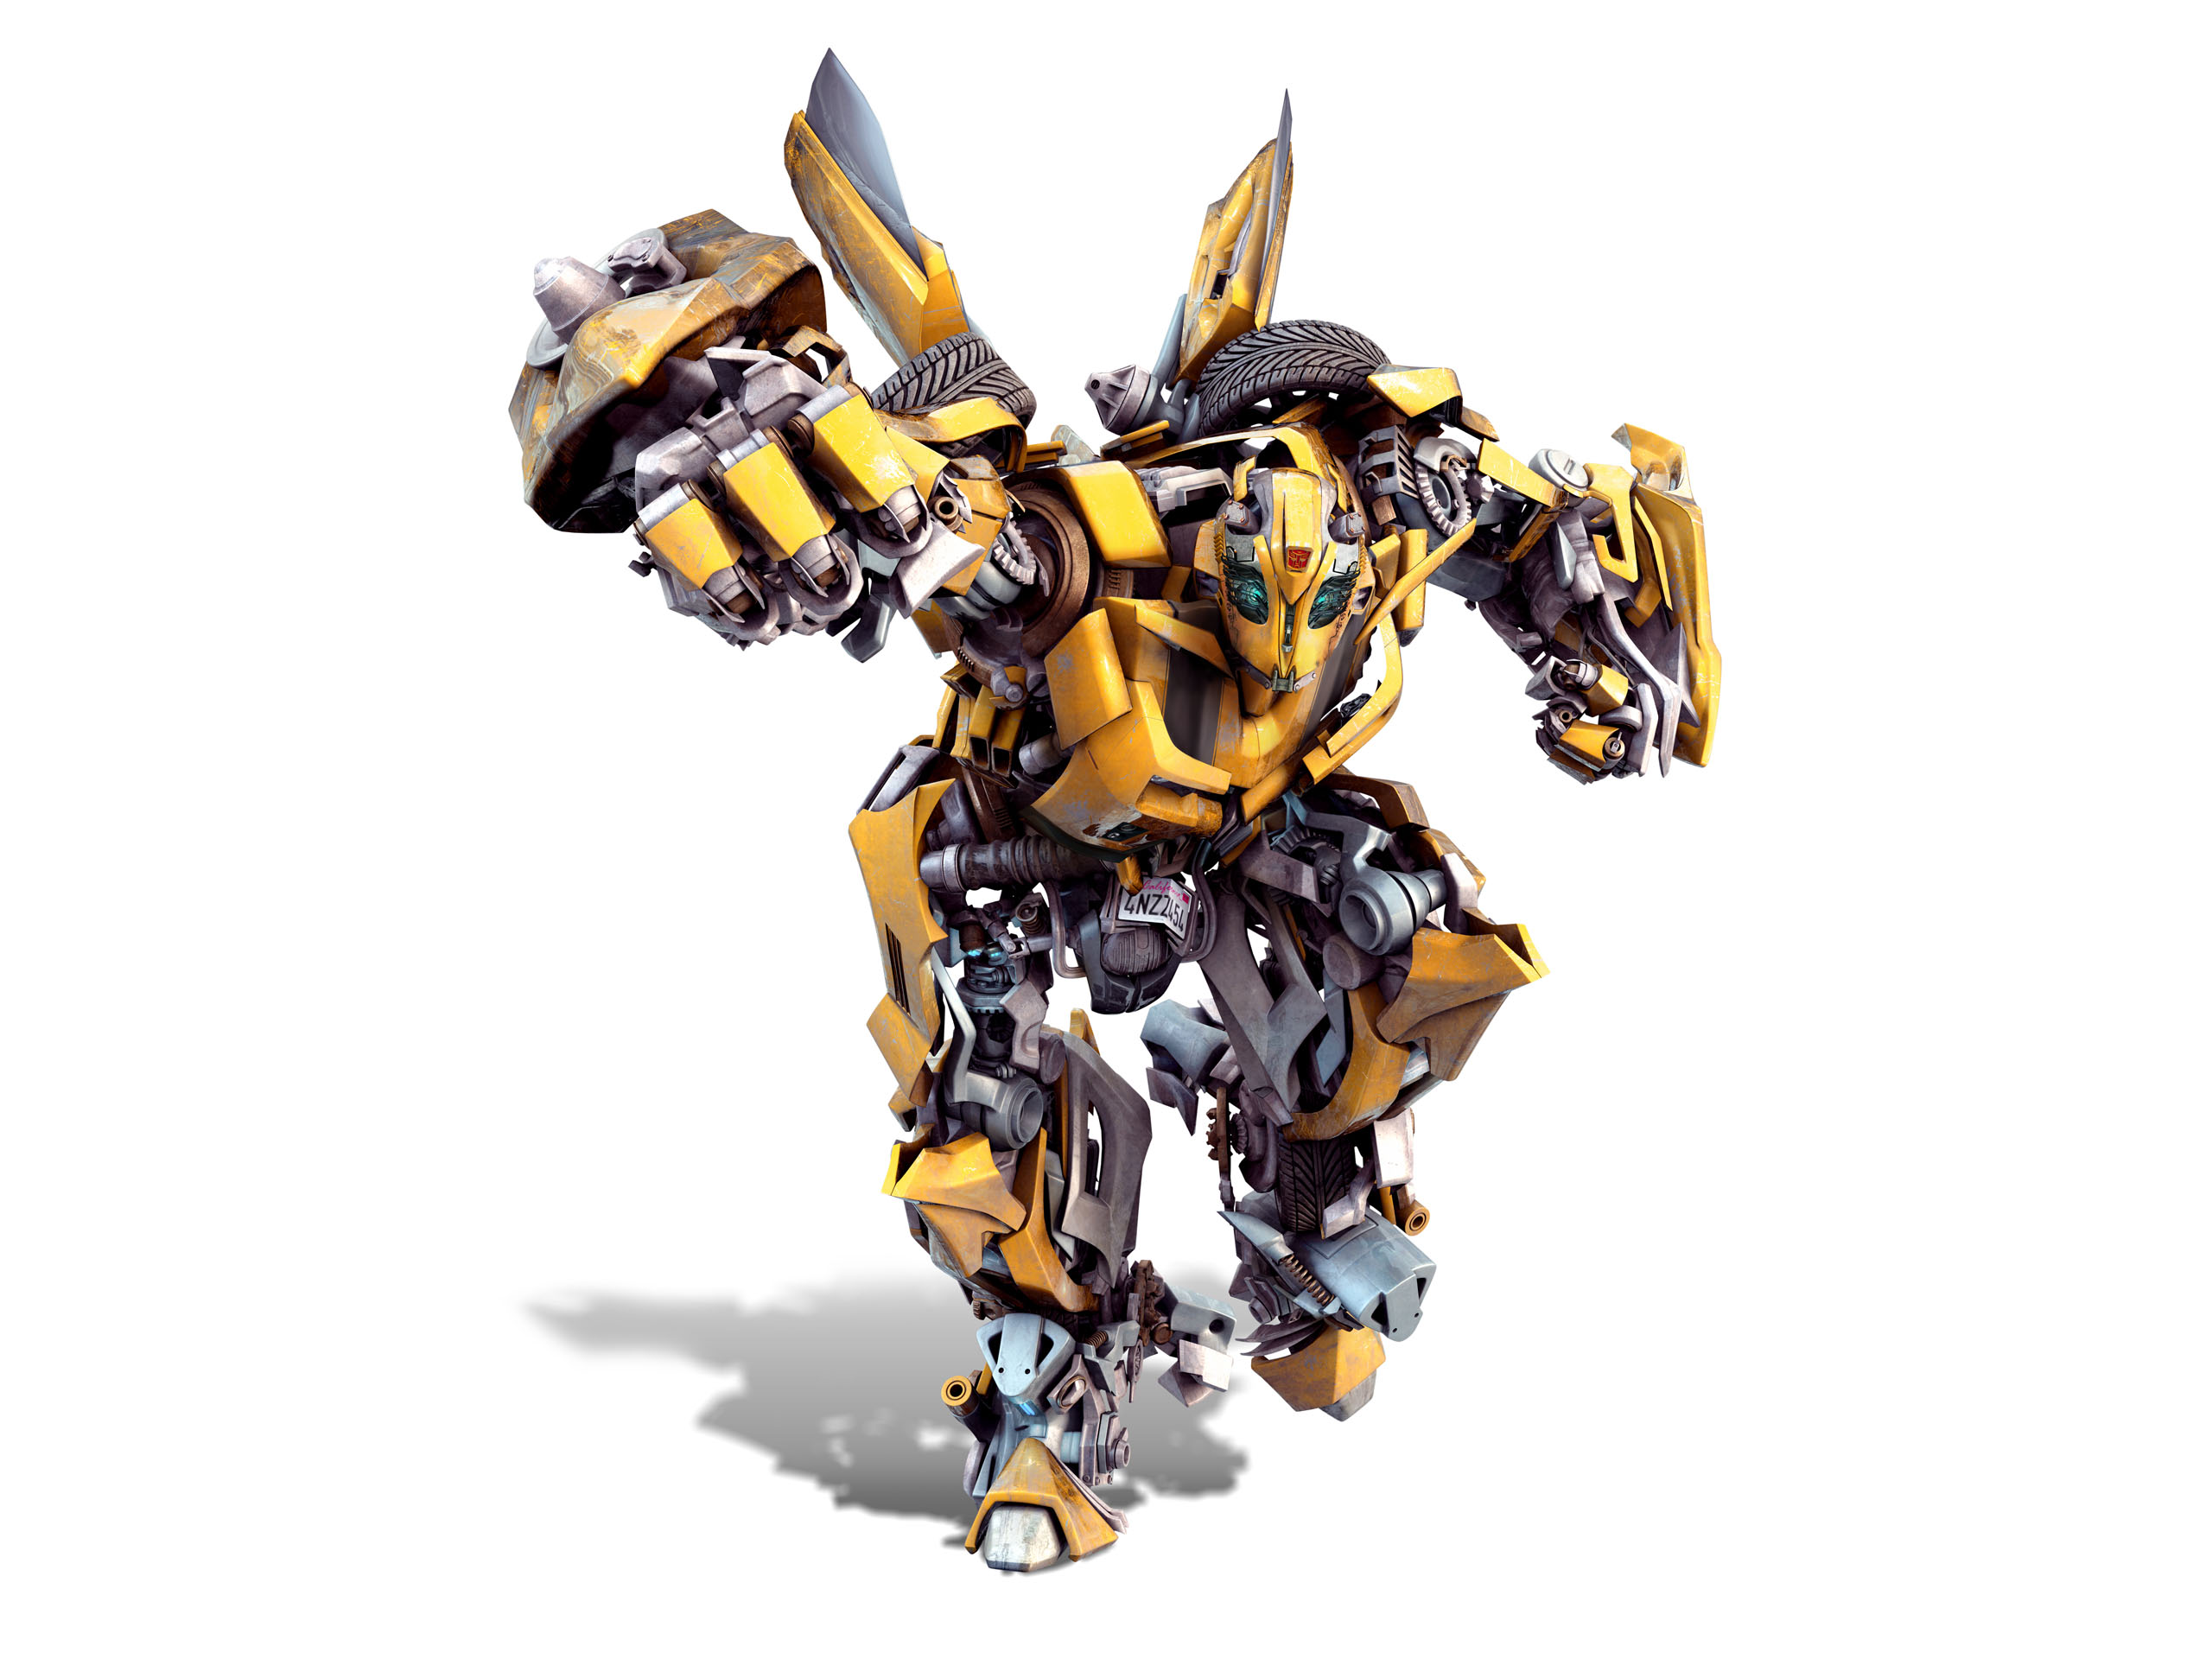 Entertainment Transformers And Hd X Photo Of 488198 Wallpaper wallpaper